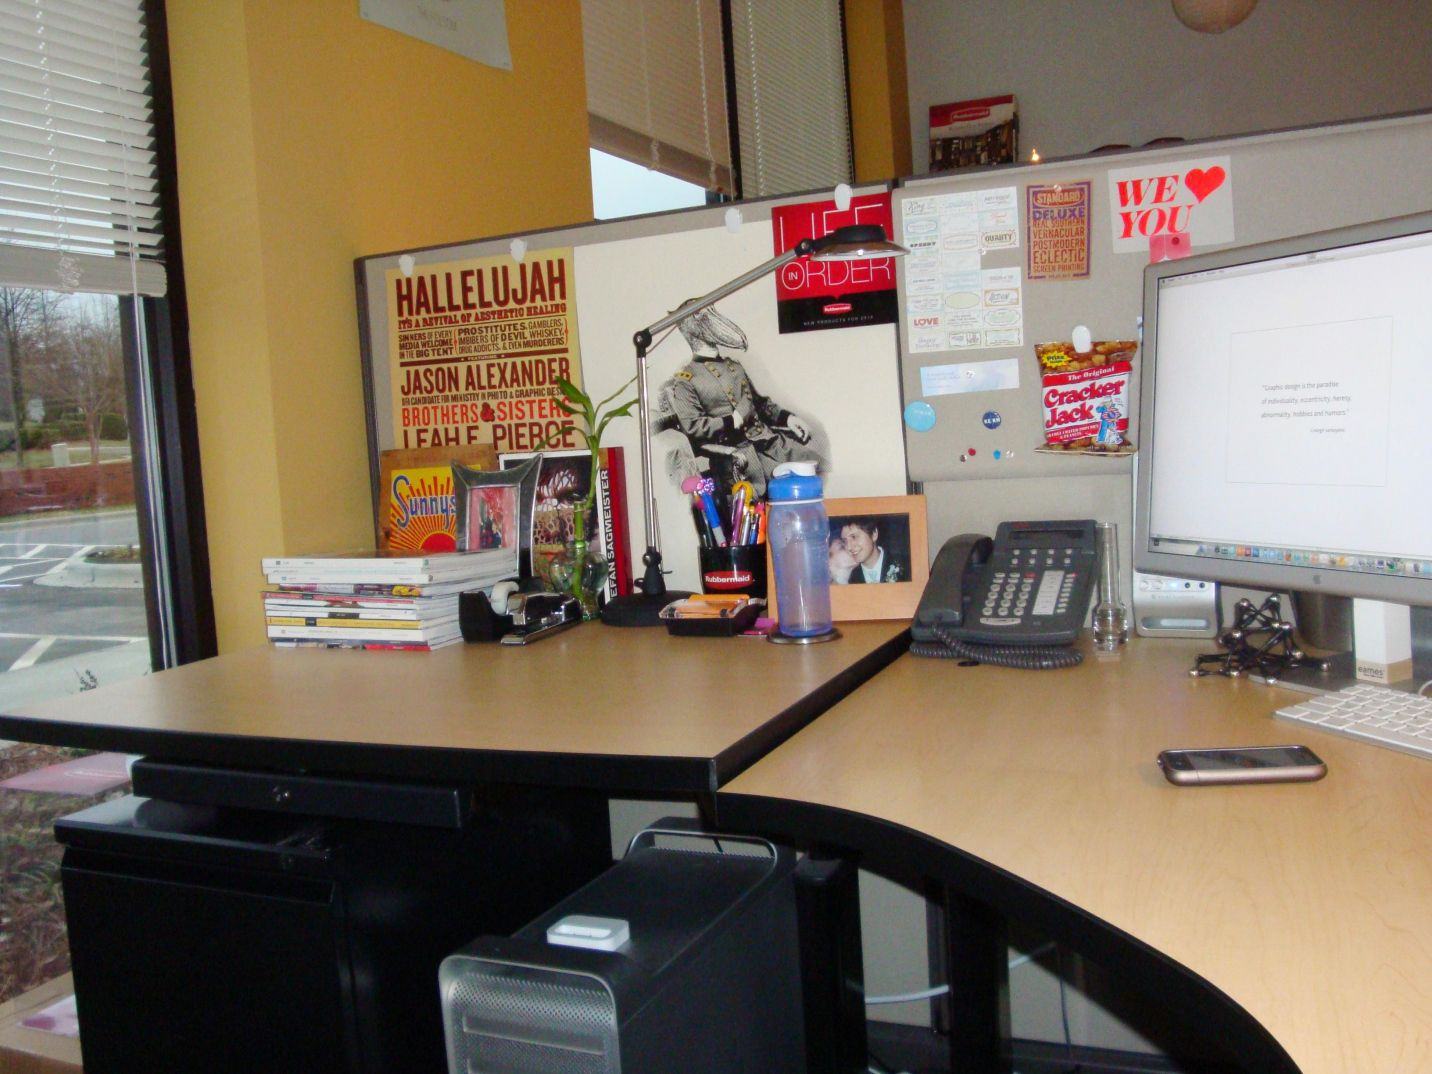 contemporary home office furniture. Organize Your Office Desk - Contemporary Home Furniture Check More At Http://michael-malarkey.com/organize-your-office-desk/ F